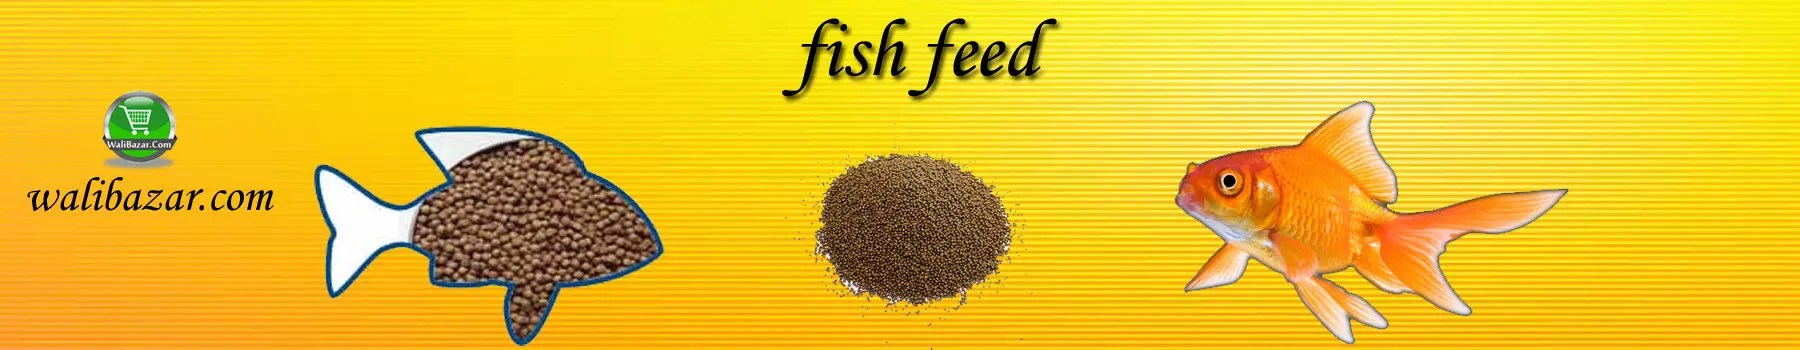 Fish feed of Bangladesh